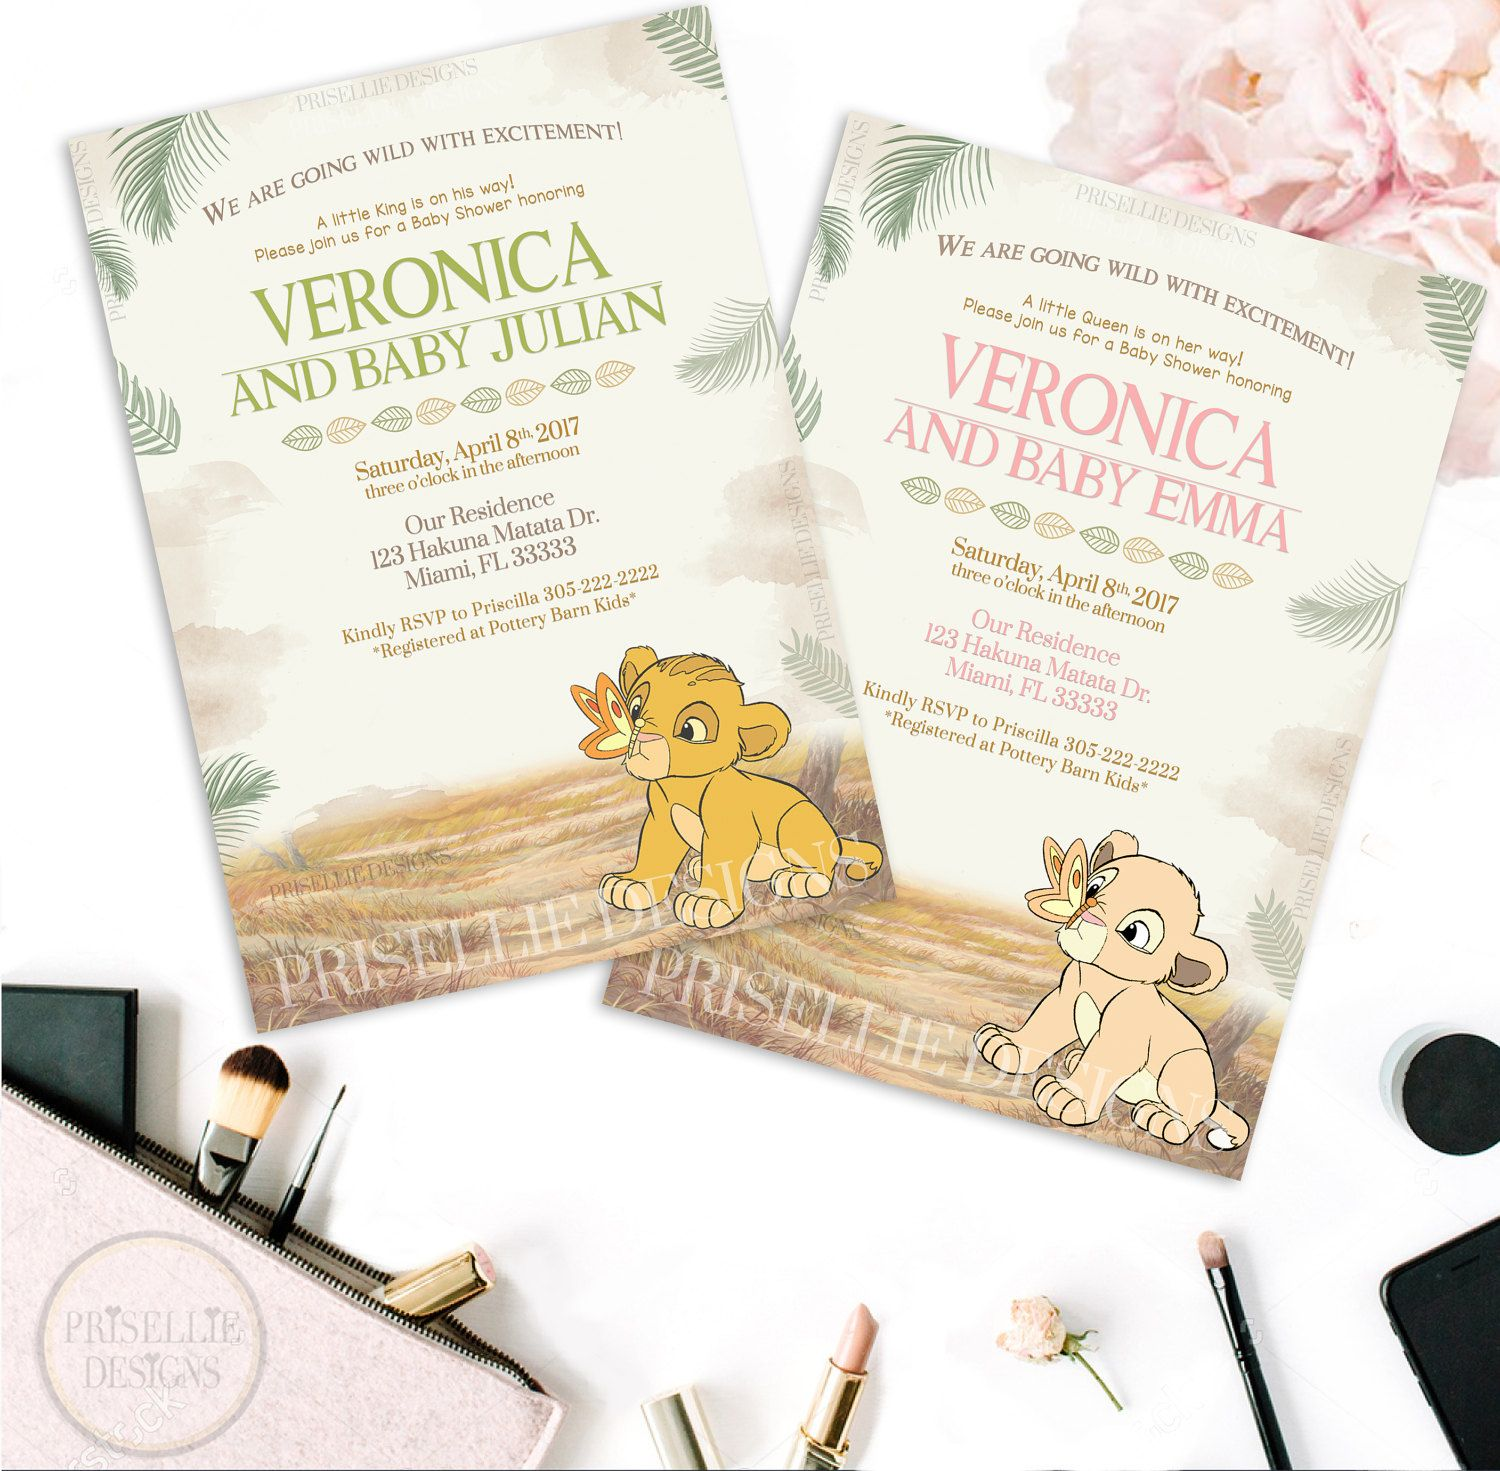 Simba baby shower invitation nala baby shower invitation lion king simba baby shower invitation nala baby shower invitation lion king baby shower invitation filmwisefo Gallery